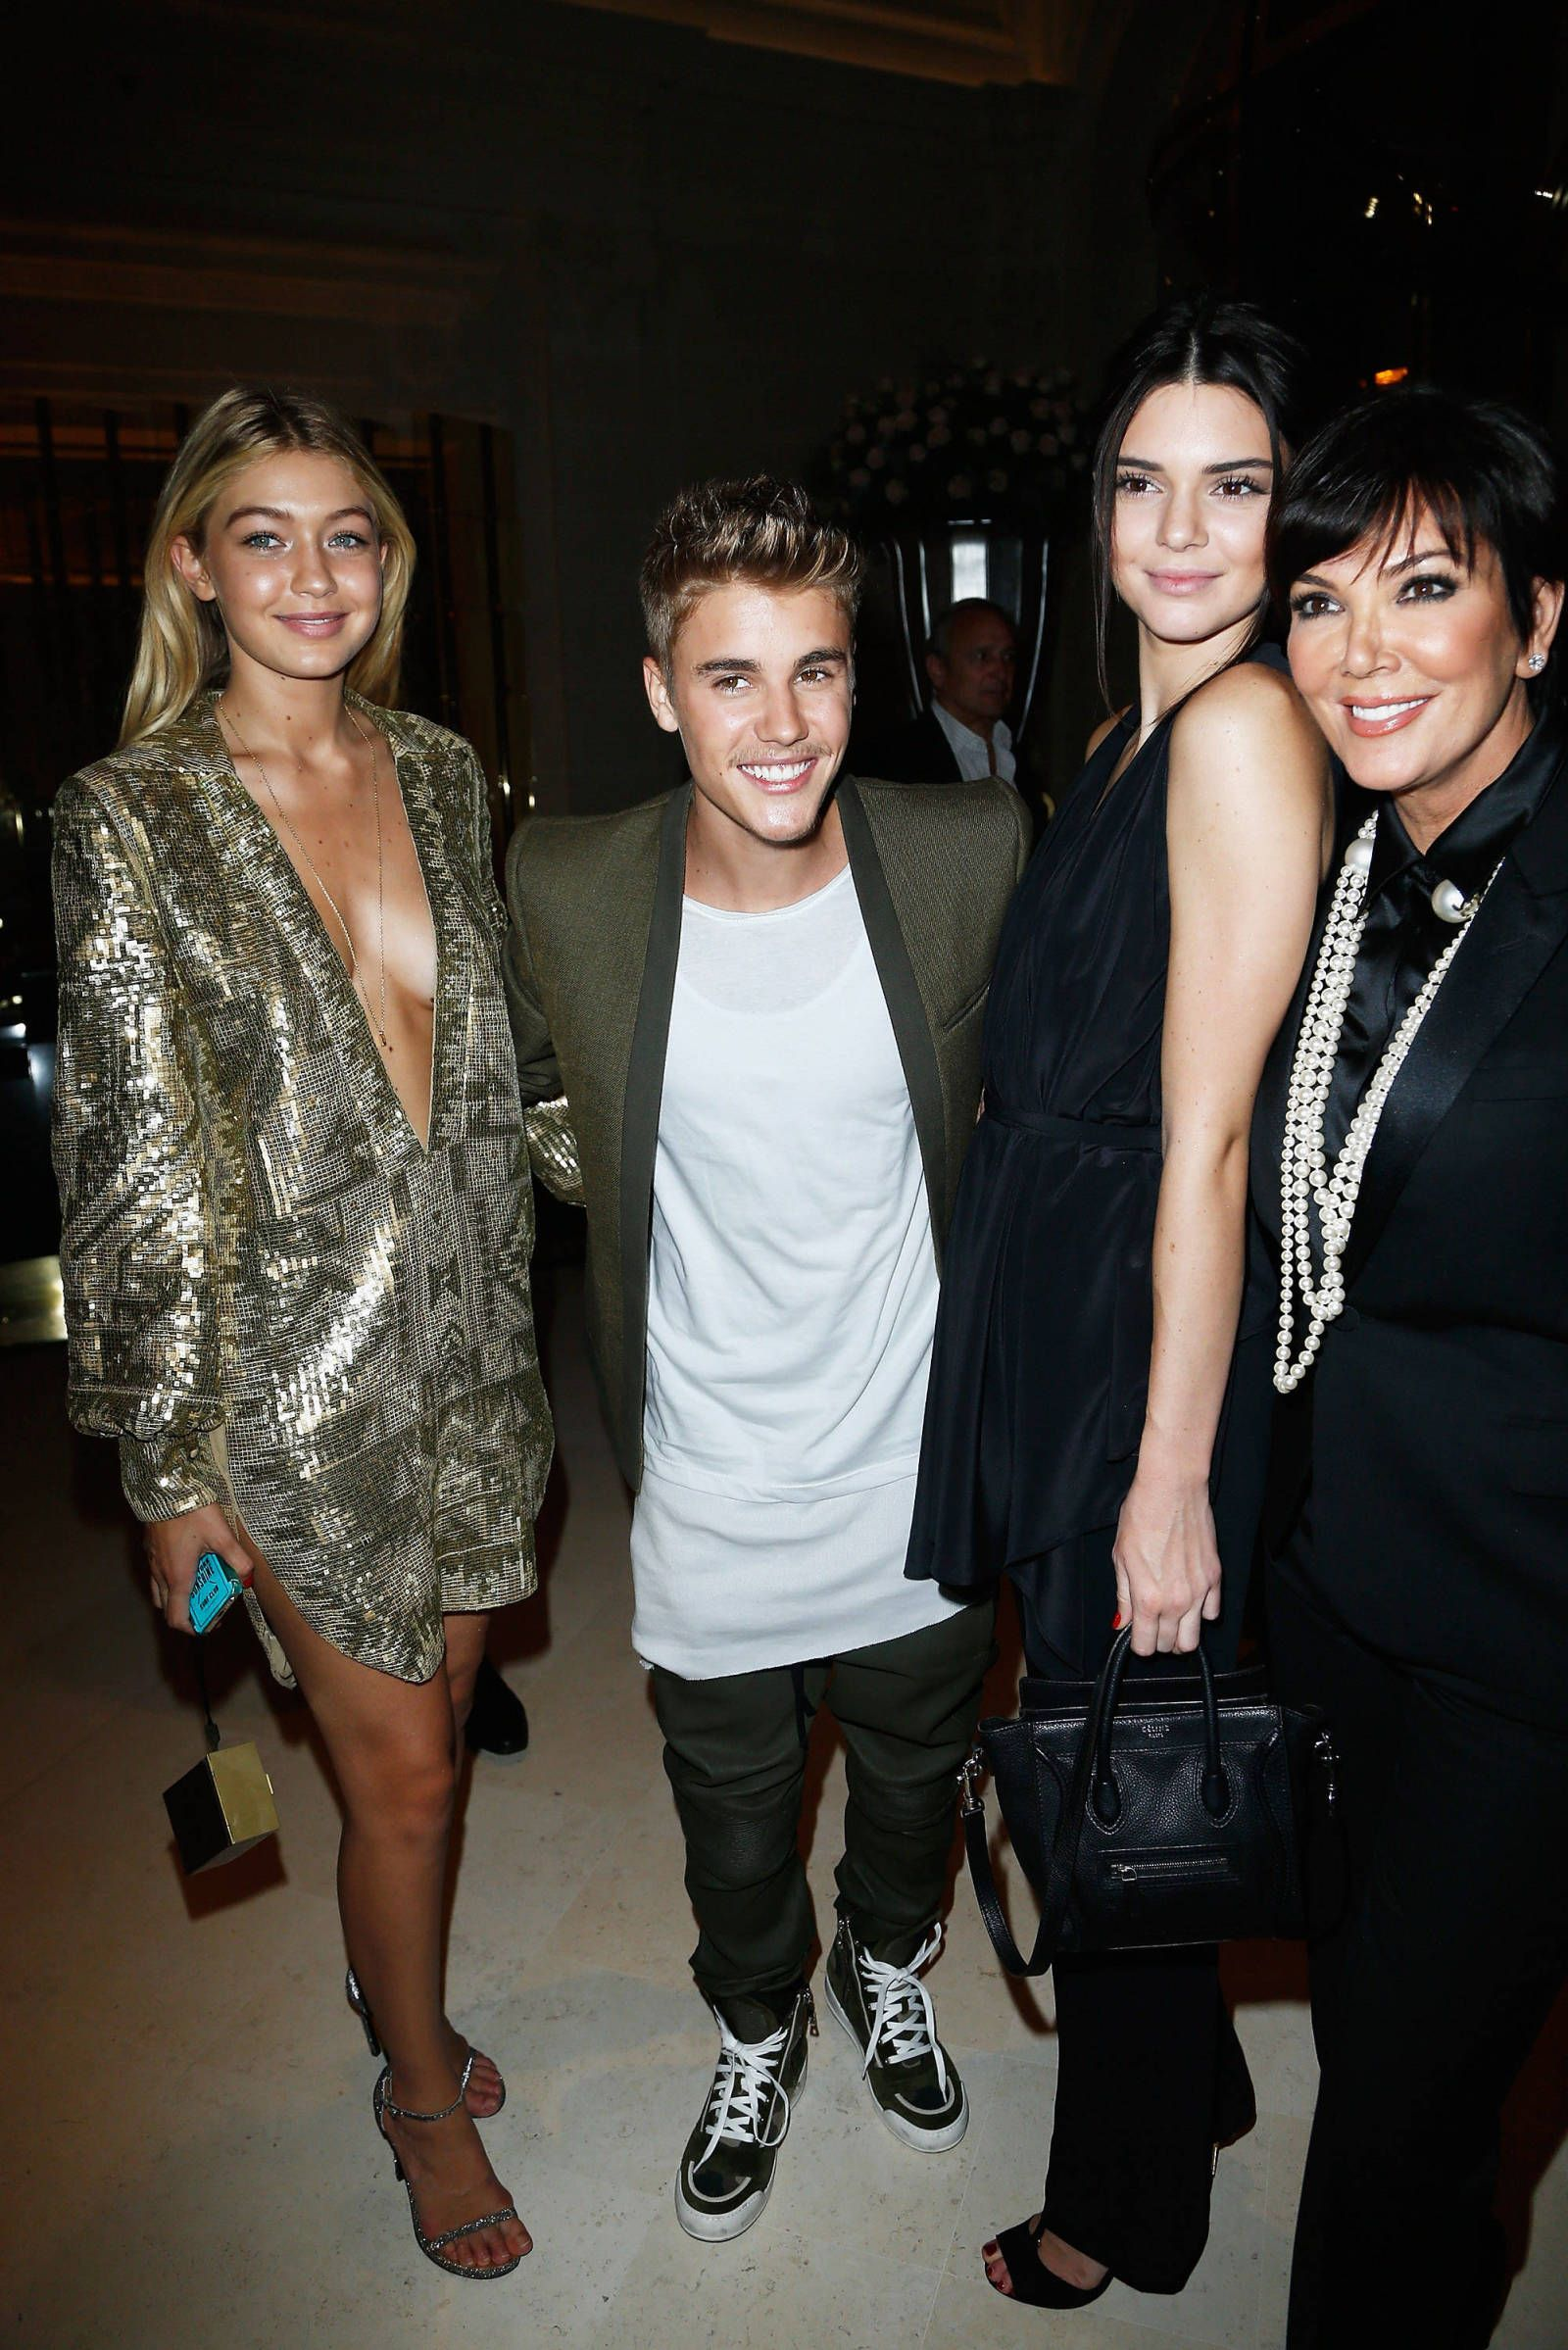 Is justin bieber dating kendall jenner